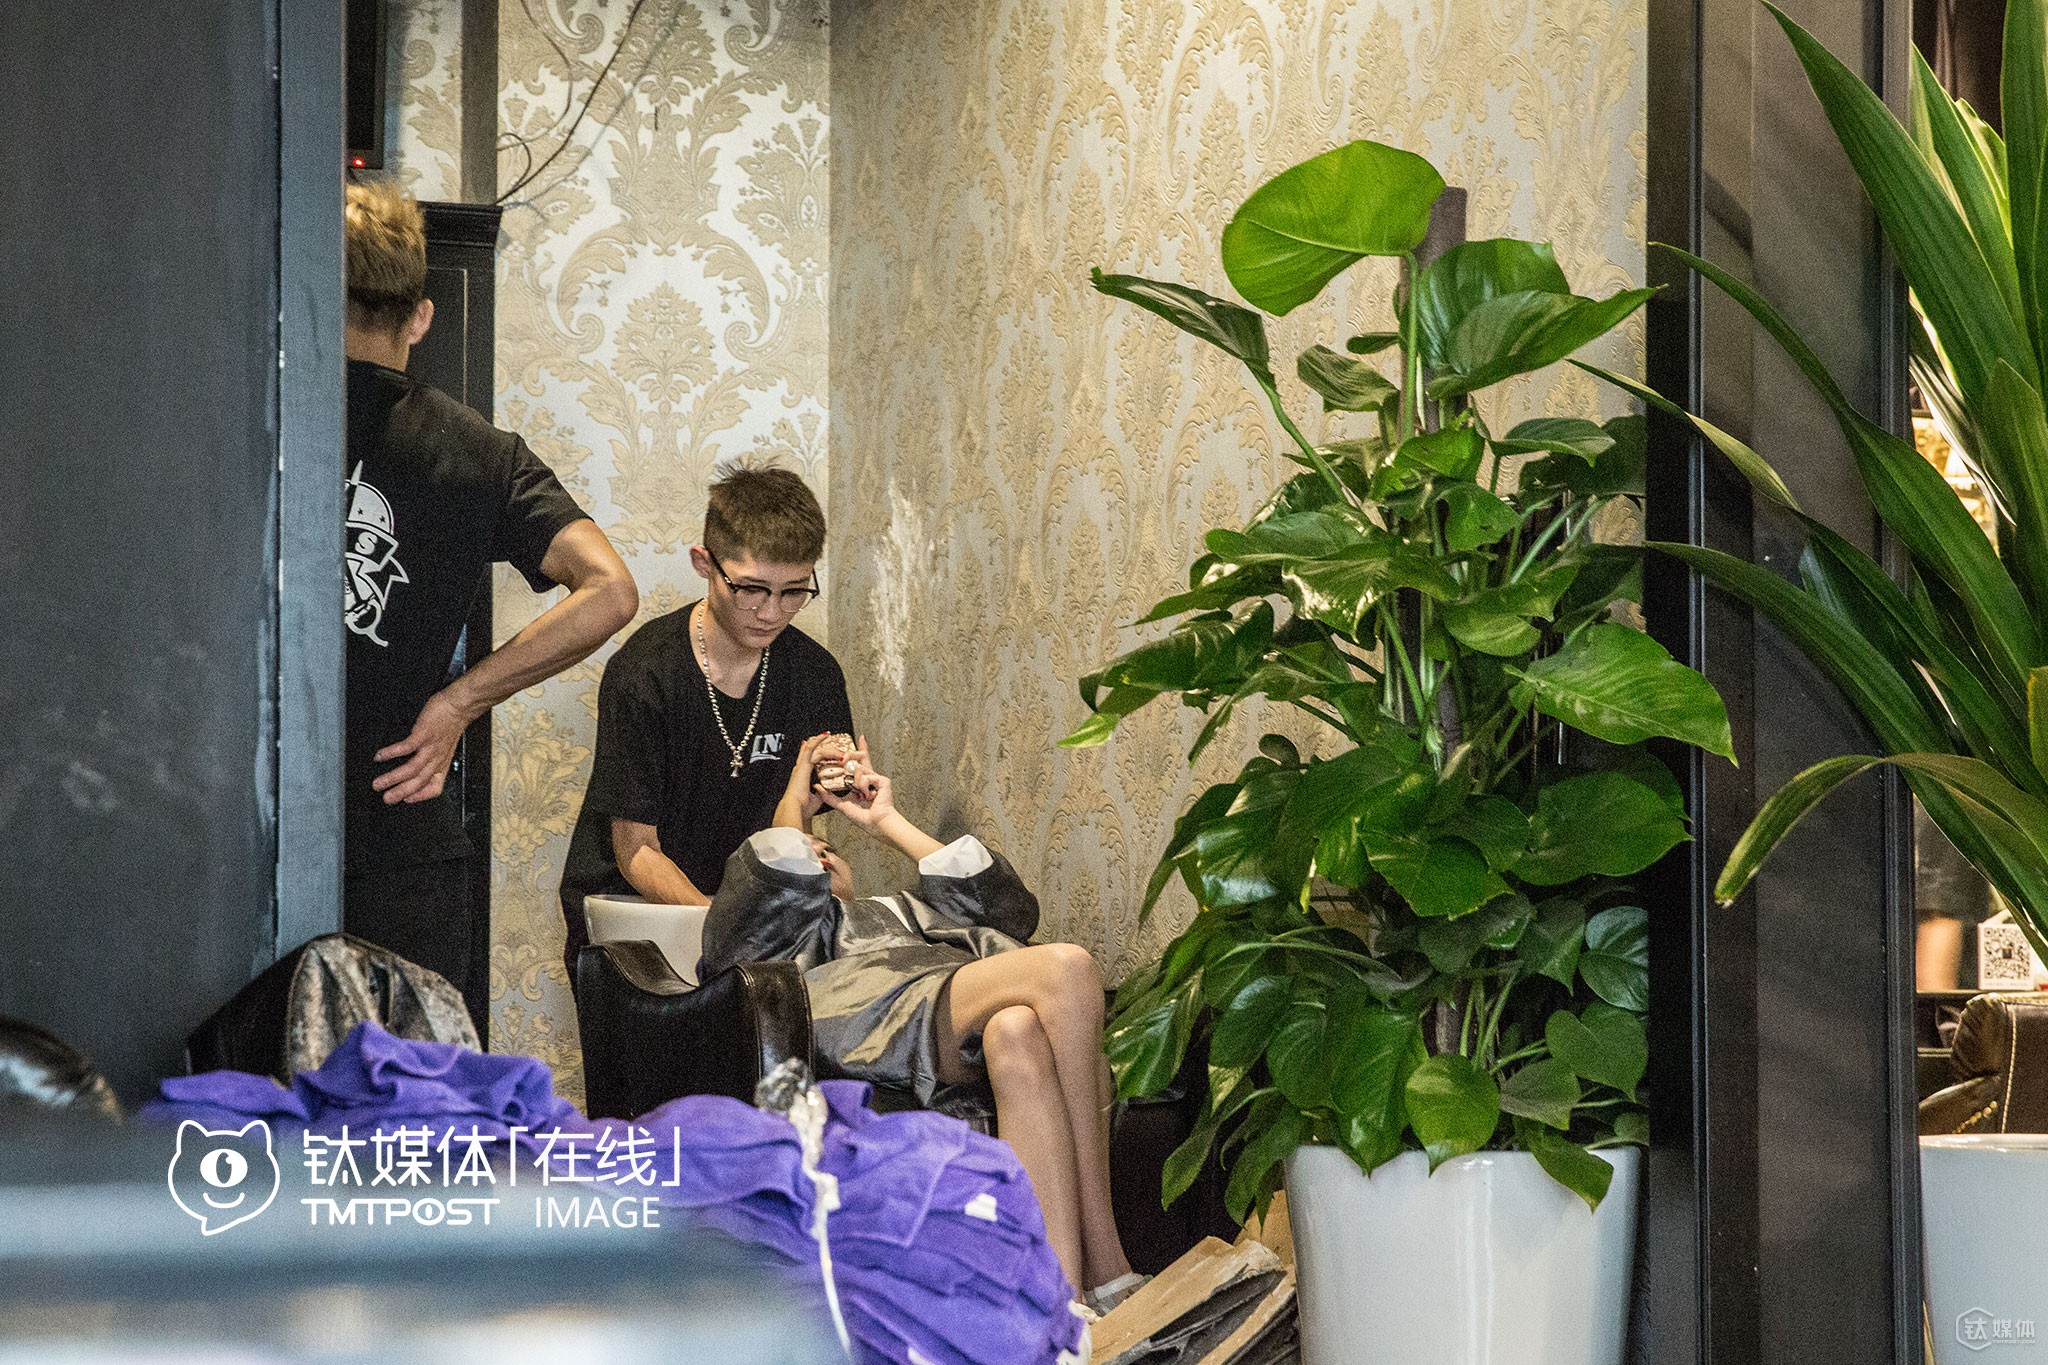 "A typical day of her would look like this: wake up and wash her hair at the barber's, see her friends, play LOL at the cyber bar, go home and watch TV and sleep. She won't stop live broadcasting even when she was washing her hair. ""I earned 300,000 yuan within two months through gifts my fans gave me,"" Youbao is already over Level 100 on Inke TV, ""when fans compete to give gifts to me, my level also rise. According to the rule, I can cash out 3,000 yuan every day at this level."" However, she never cashed out yet. ""I never treat this stuff as a work, and never expect to make money through this since because I can always turn to my family. In addition, I can make quite some money through opening online stores on WeChat,"" she said."